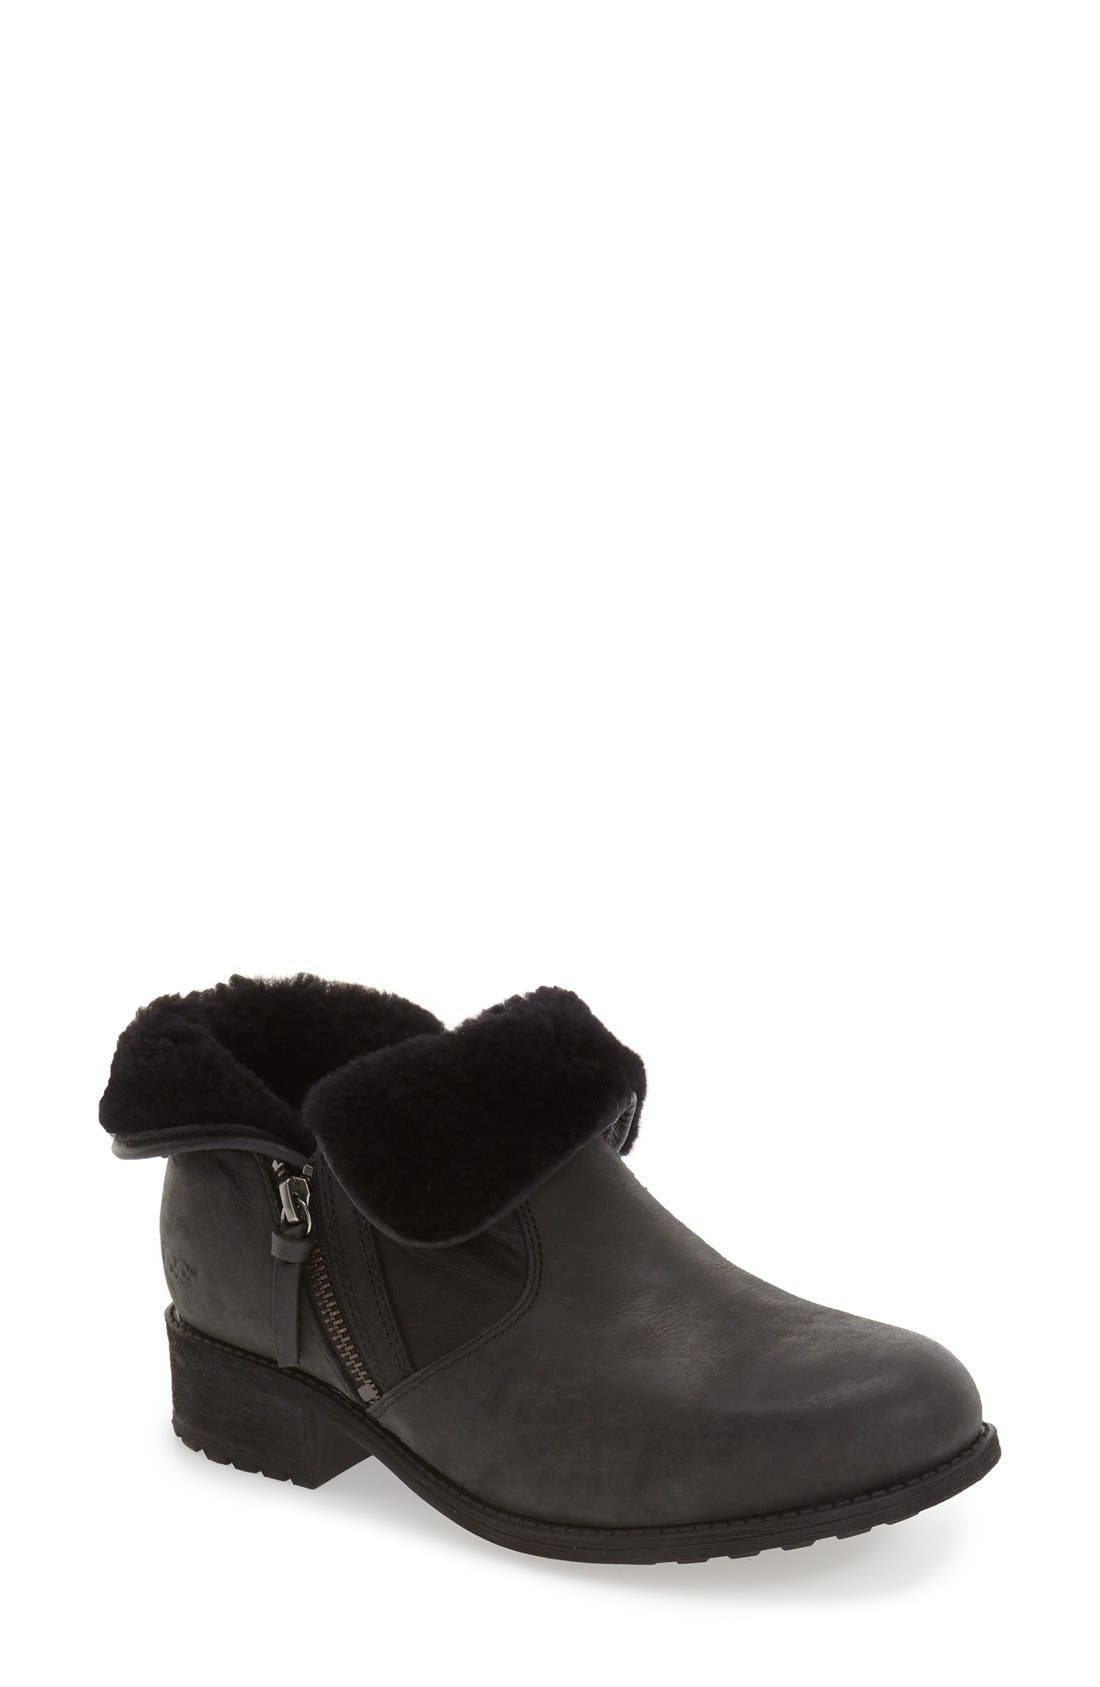 Lavelle Boot,                             Main thumbnail 1, color,                             Black Leather